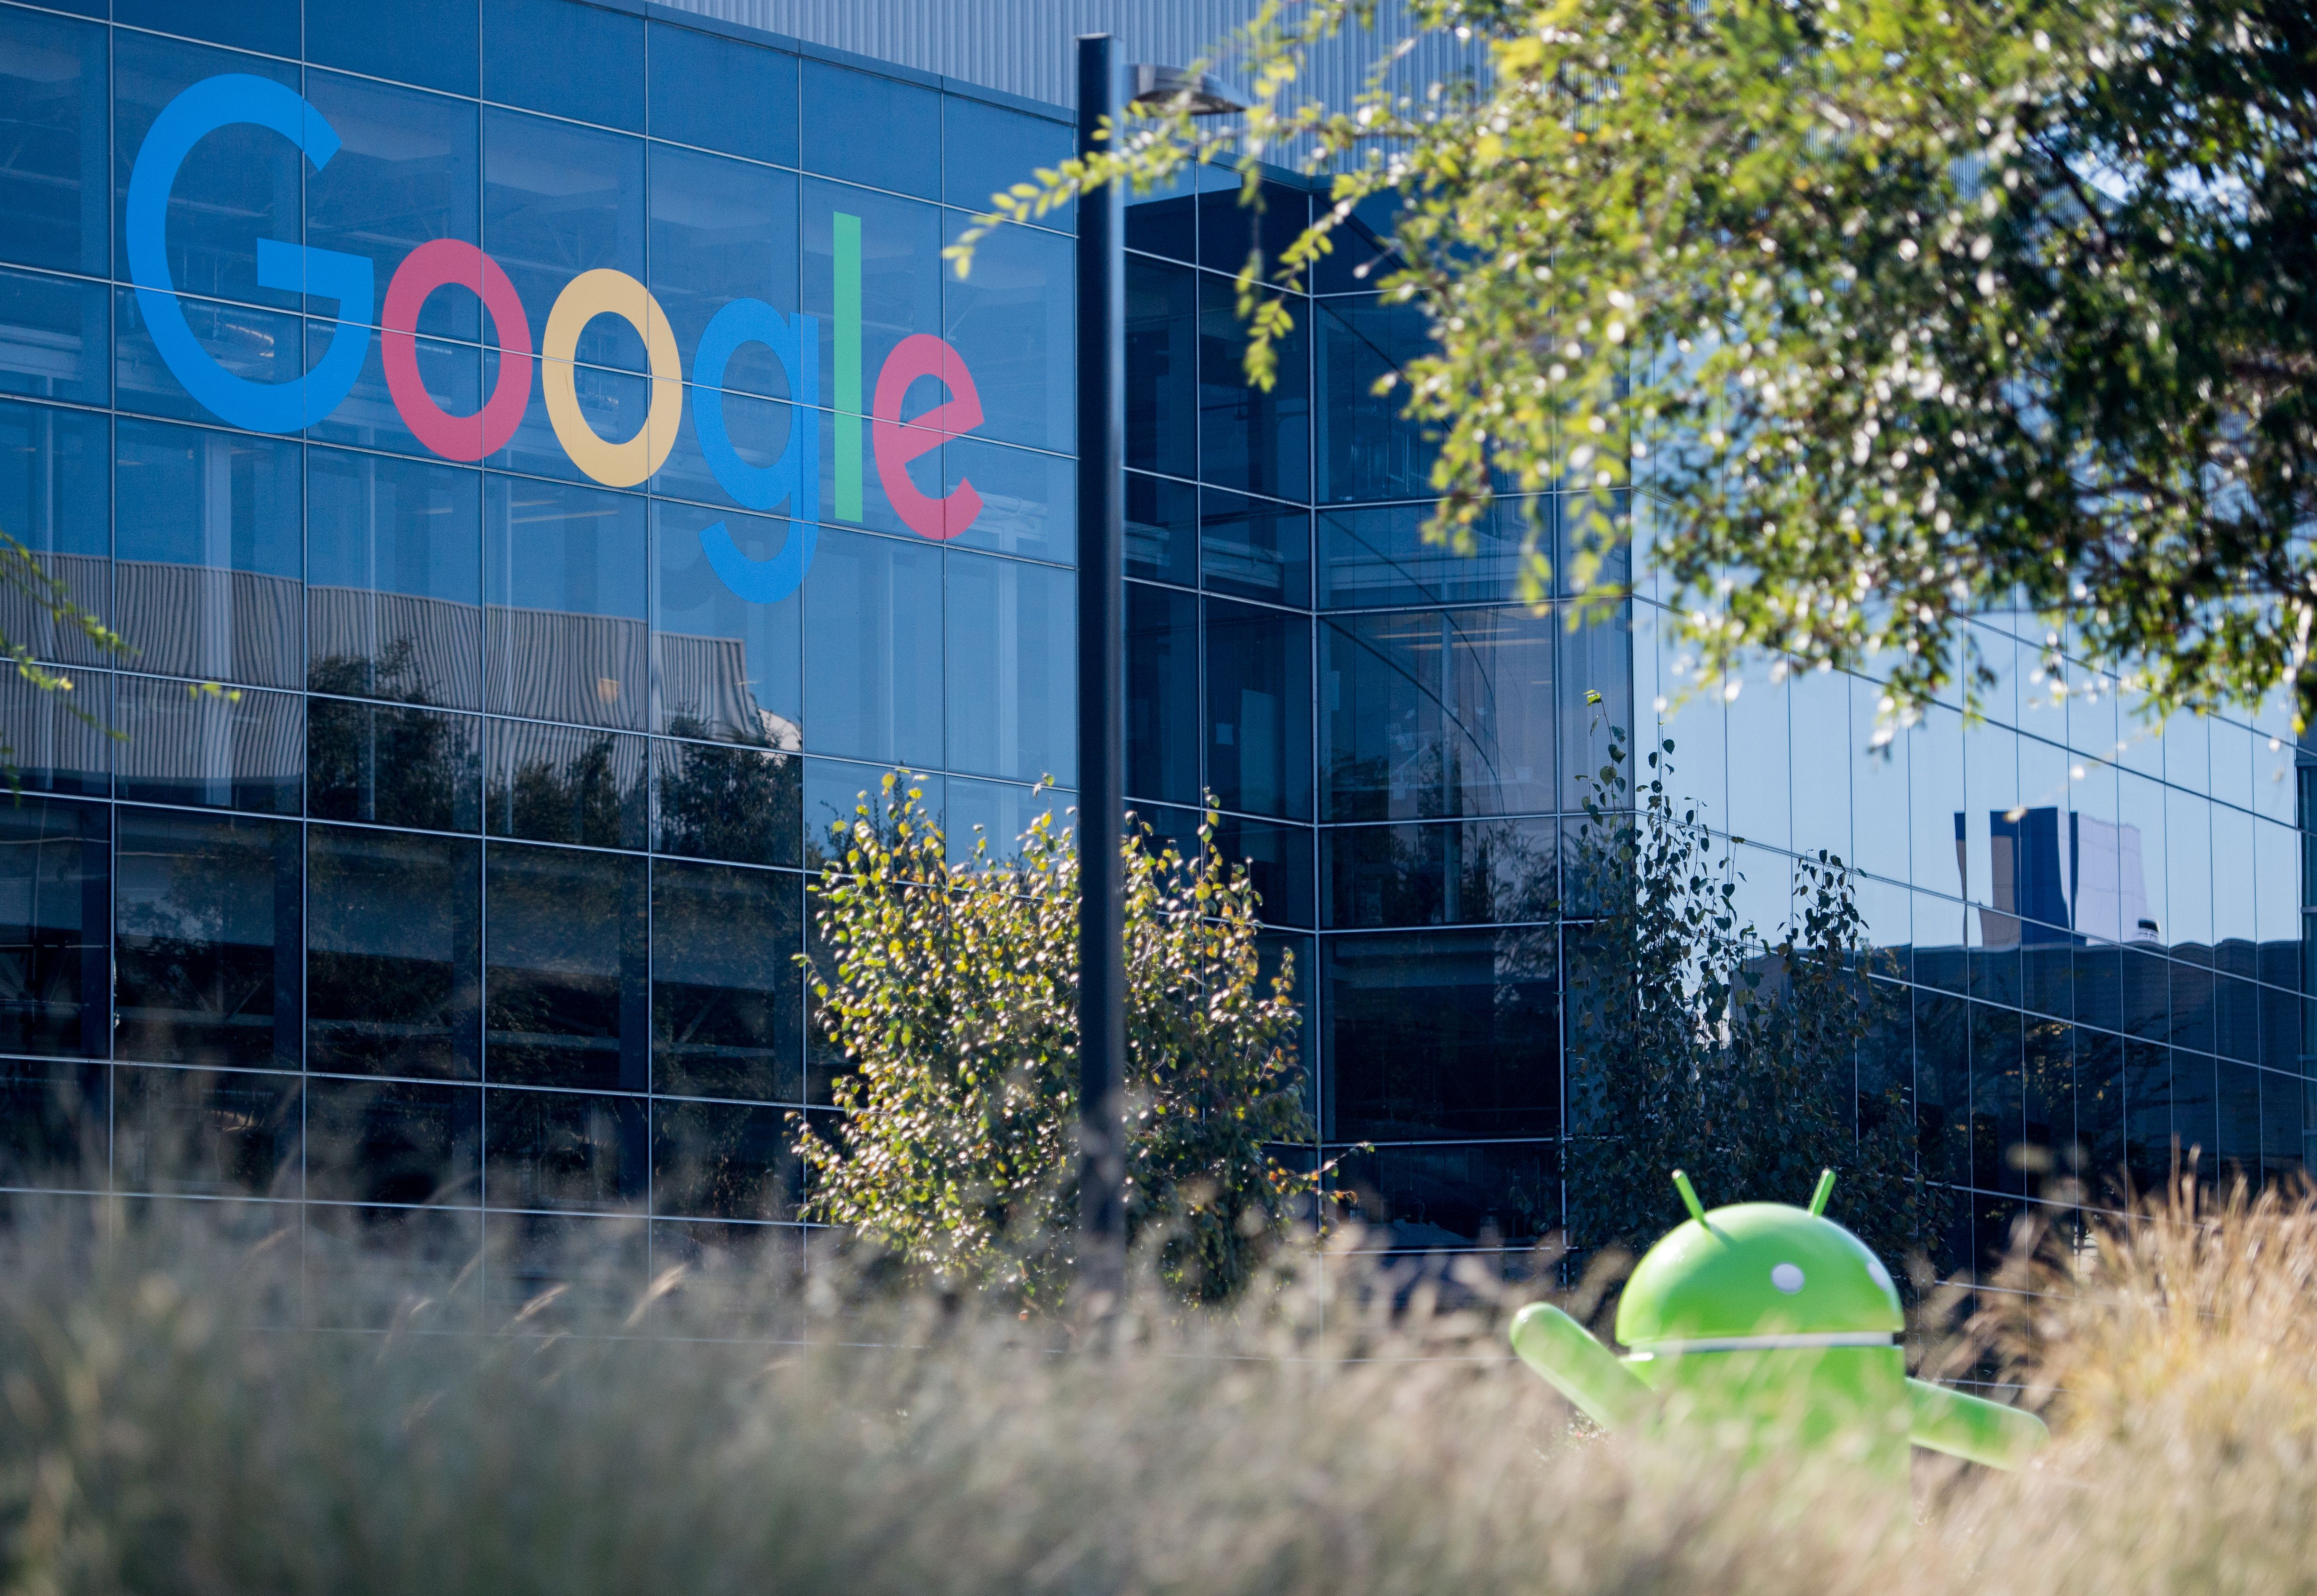 A Google logo and Android statue at the Googleplex in Menlo Park, California on November 4, 2016. (Josh Edelson/AFP/Getty Images)